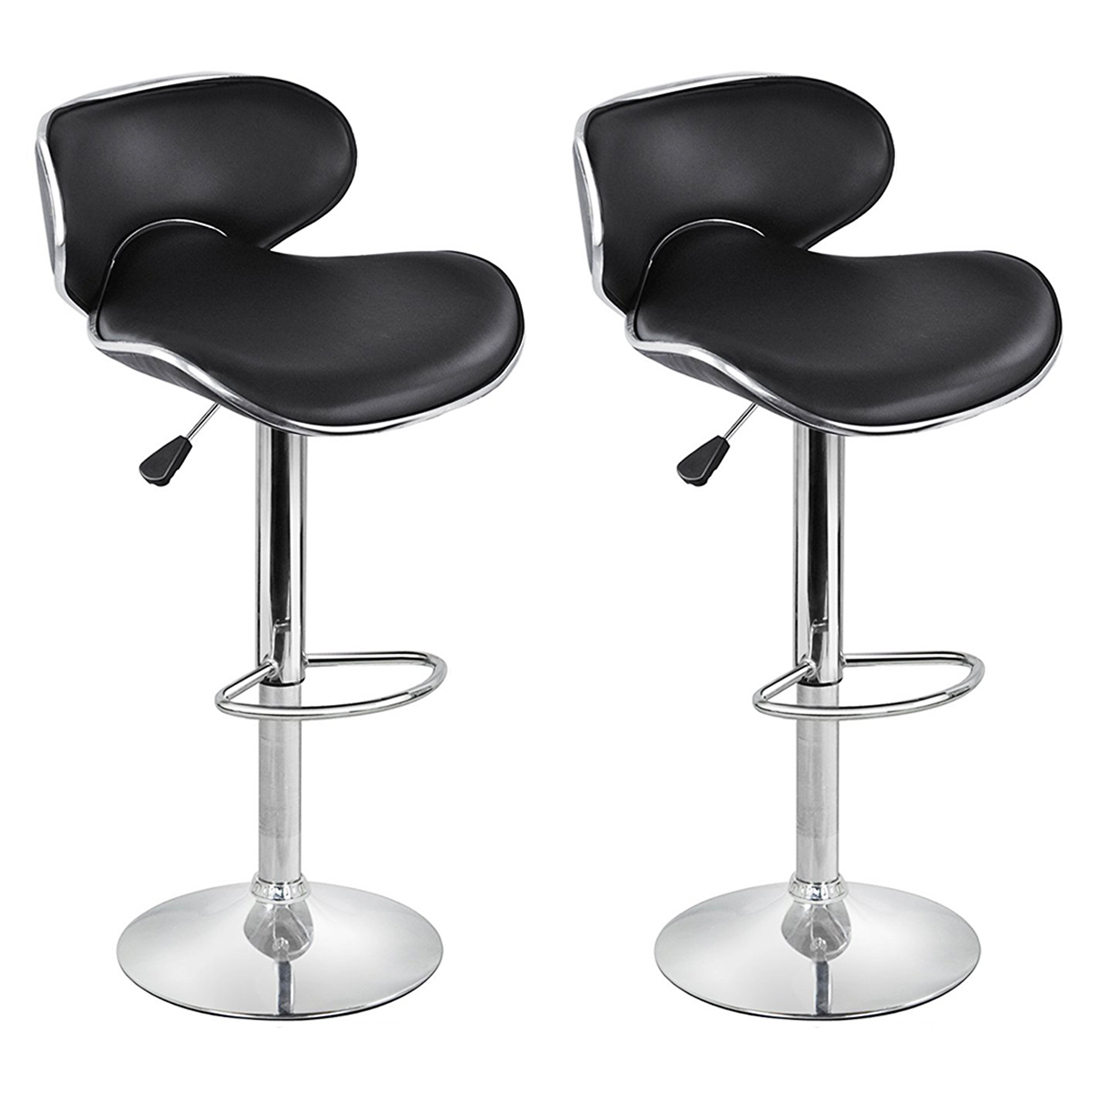 2 faux leather kitchen breakfast bar stool barstools for Kitchen swivel bar stools